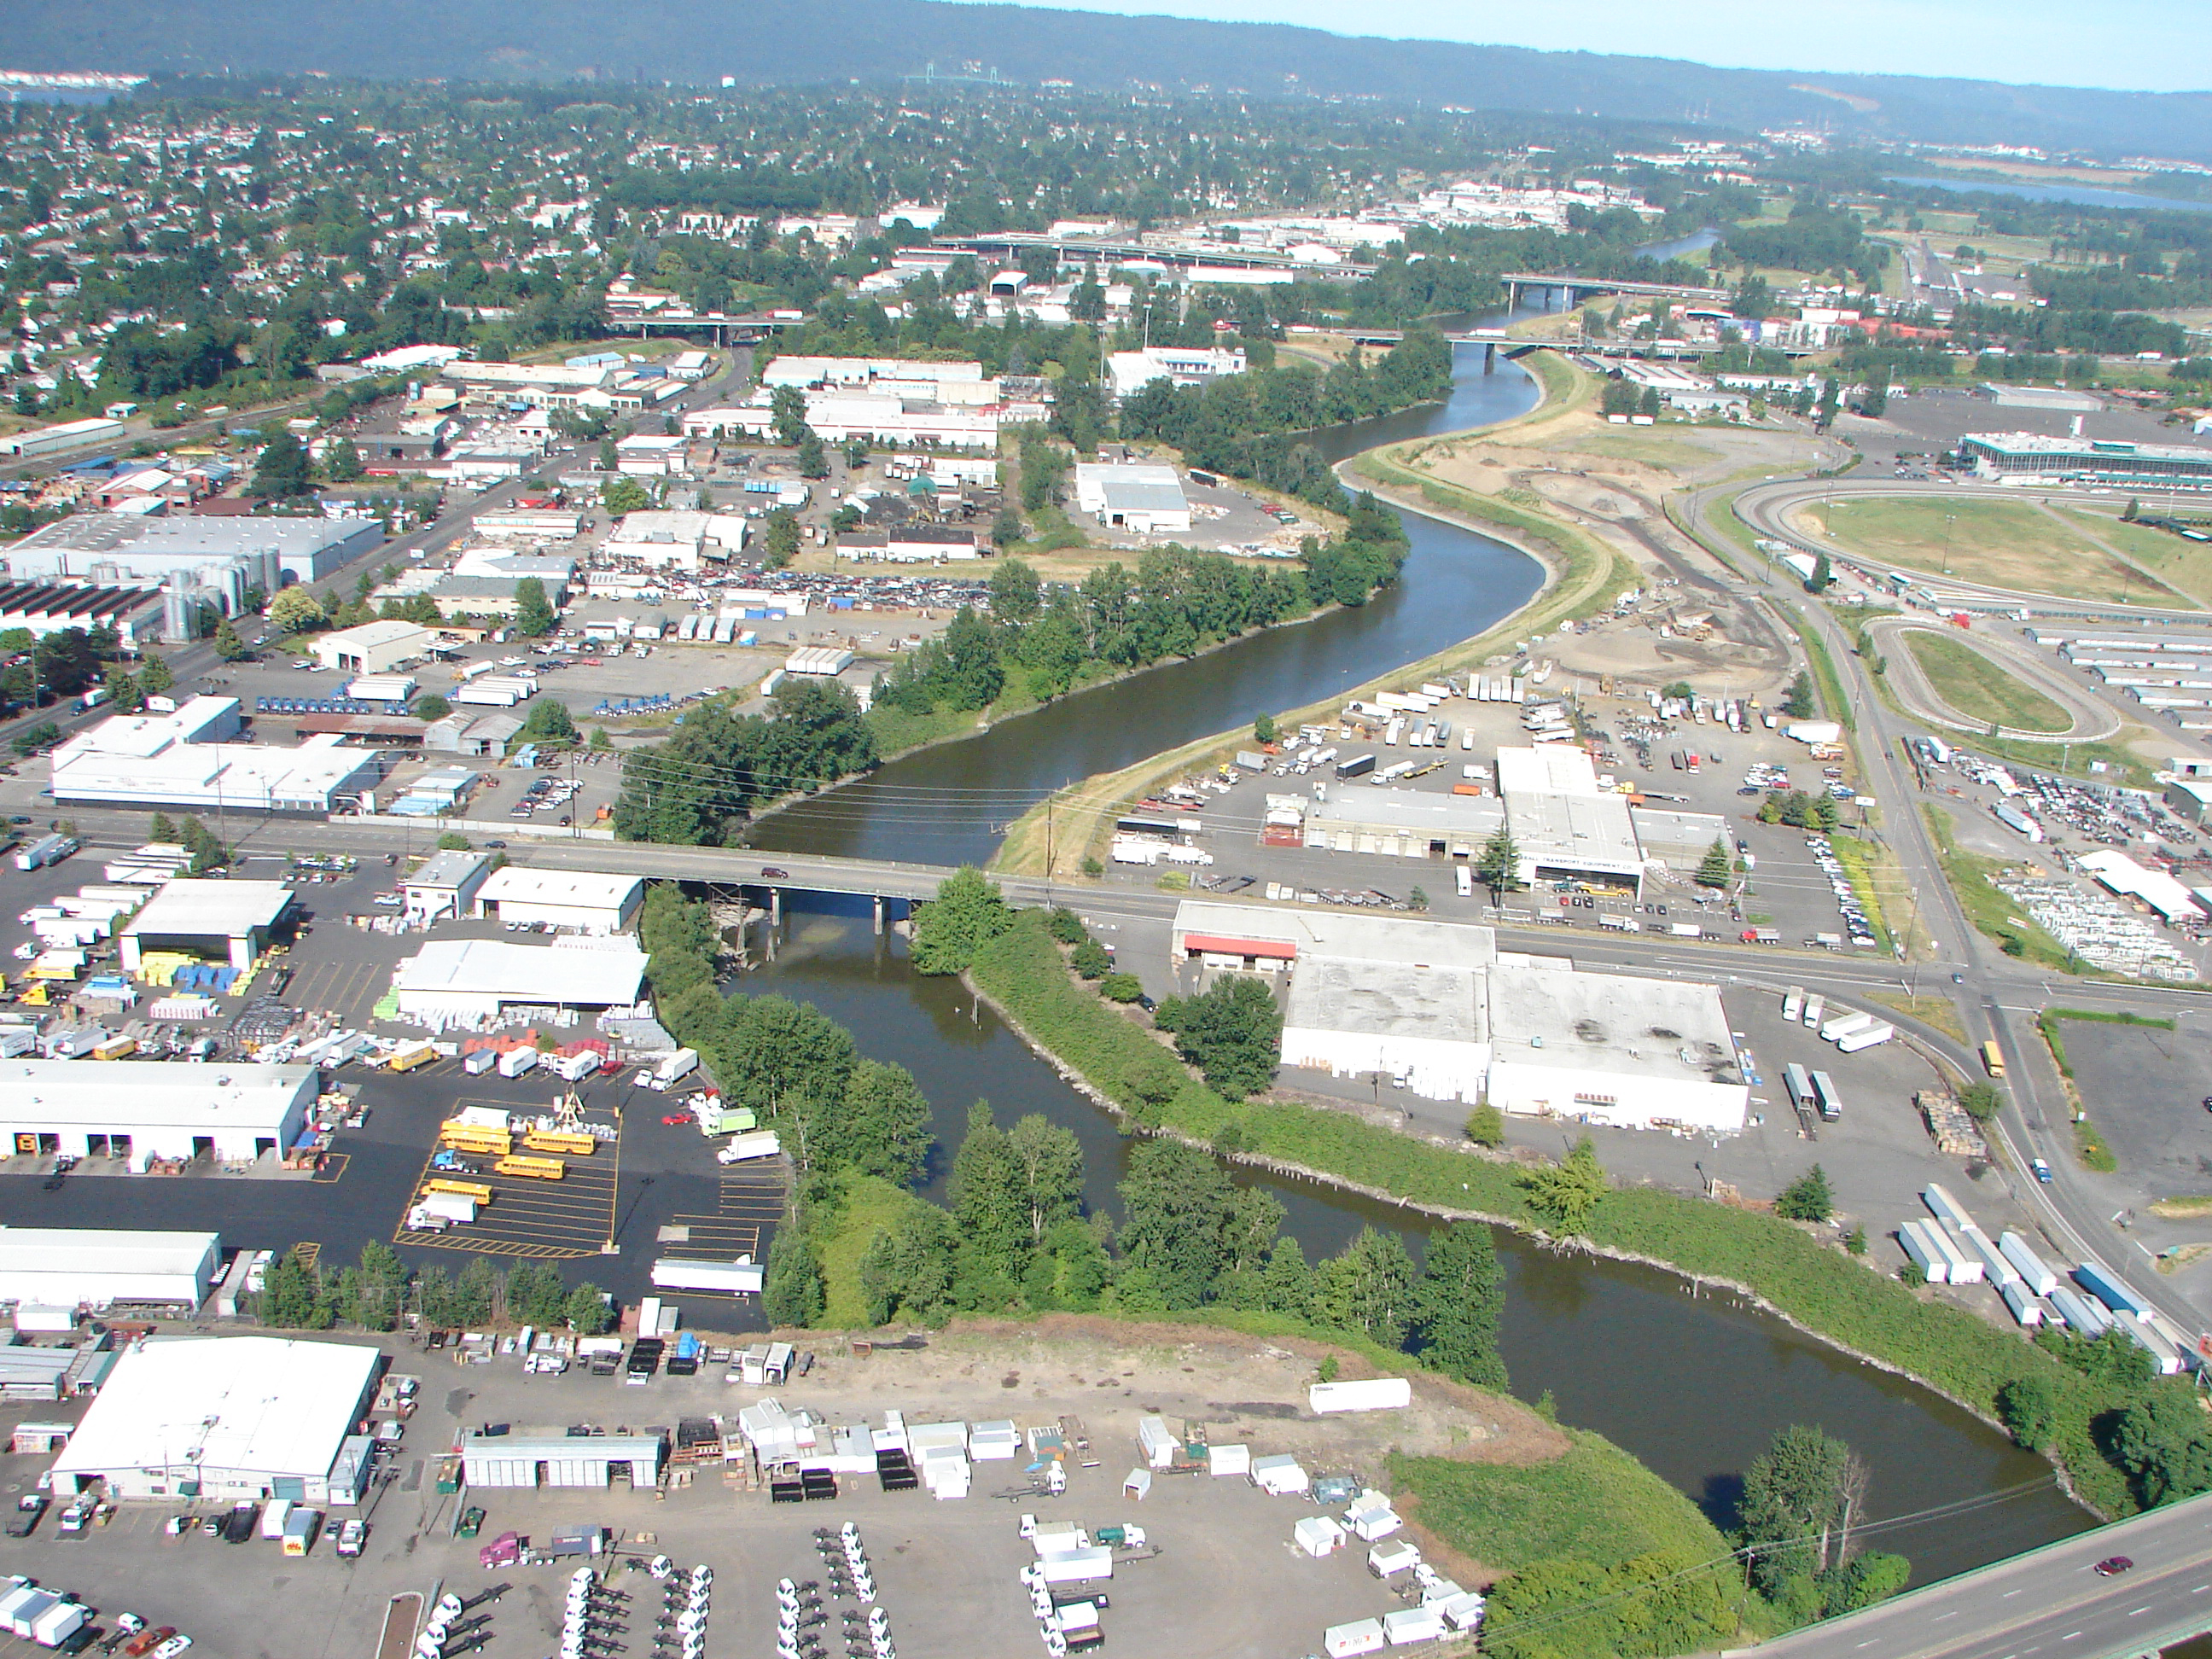 Photo of the Columbia Corridor industrial buildings and the Columbia Slough